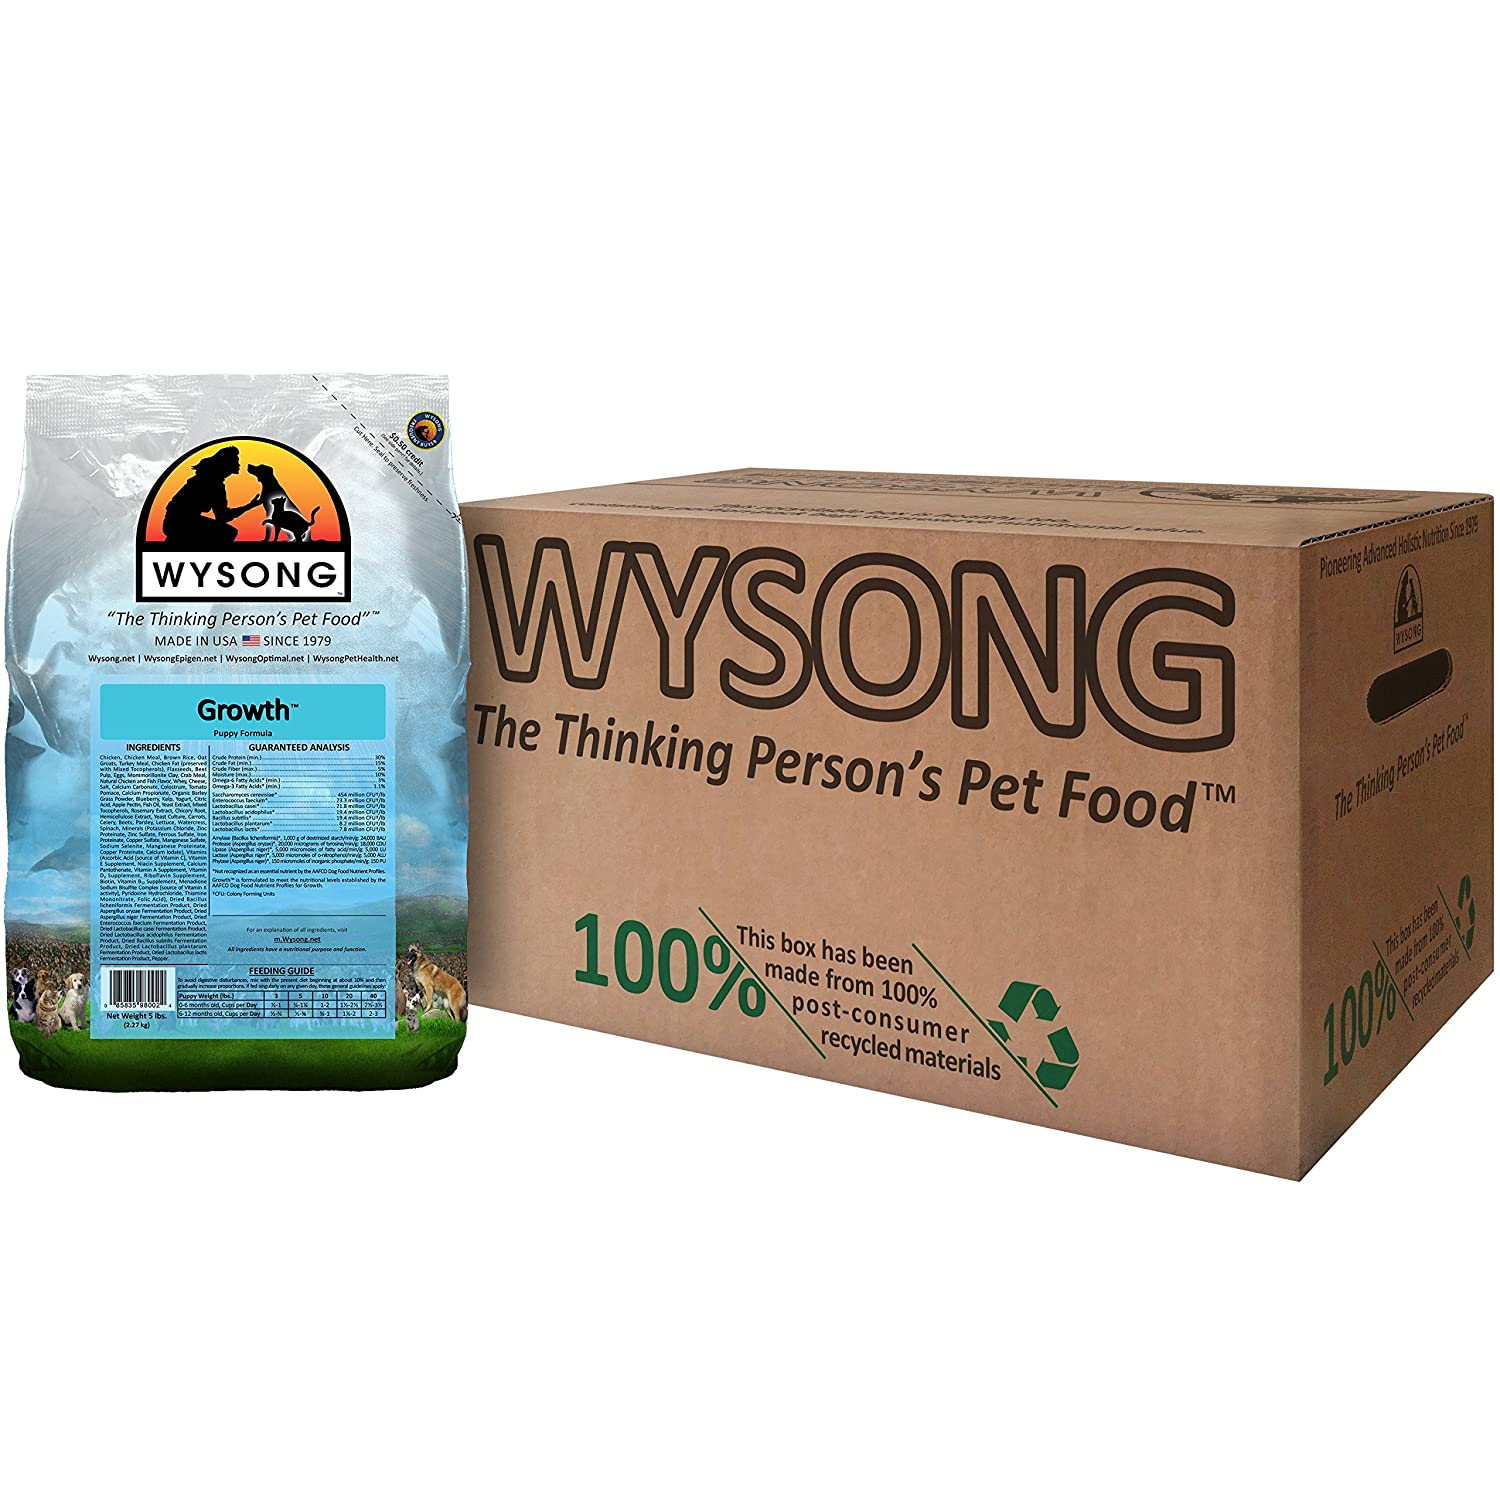 Amazon.com: WYSONG PET NUTRITIONAL PRODUCTS Wysong Growth Puppy Formula Dry Puppy Food, Four- 5 Pound Bags: Pet Supplies